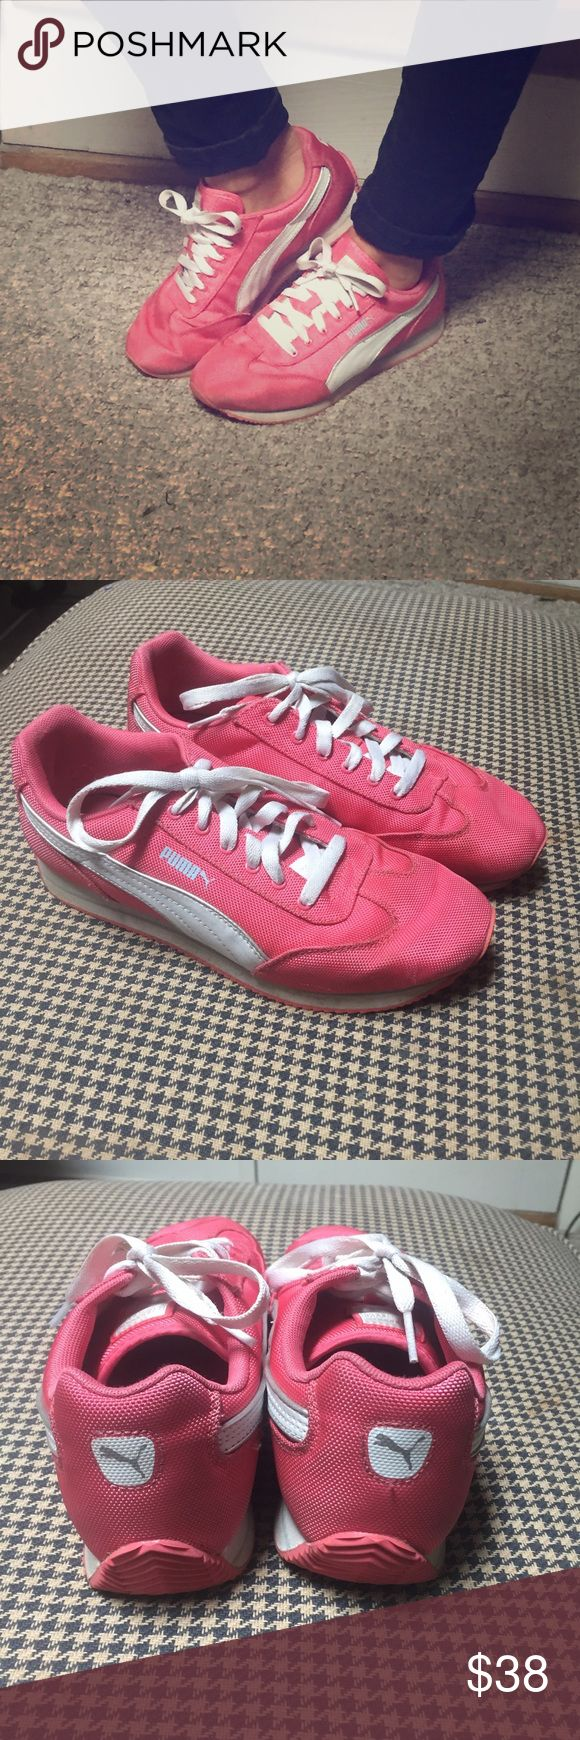 Pink women's Puma retro style running shoes SZ 9 Pink Vintage Puma Runner style women's tennis shoes size 9. Like new. Fun 😜 crazy pink color! Puma Shoes Athletic Shoes